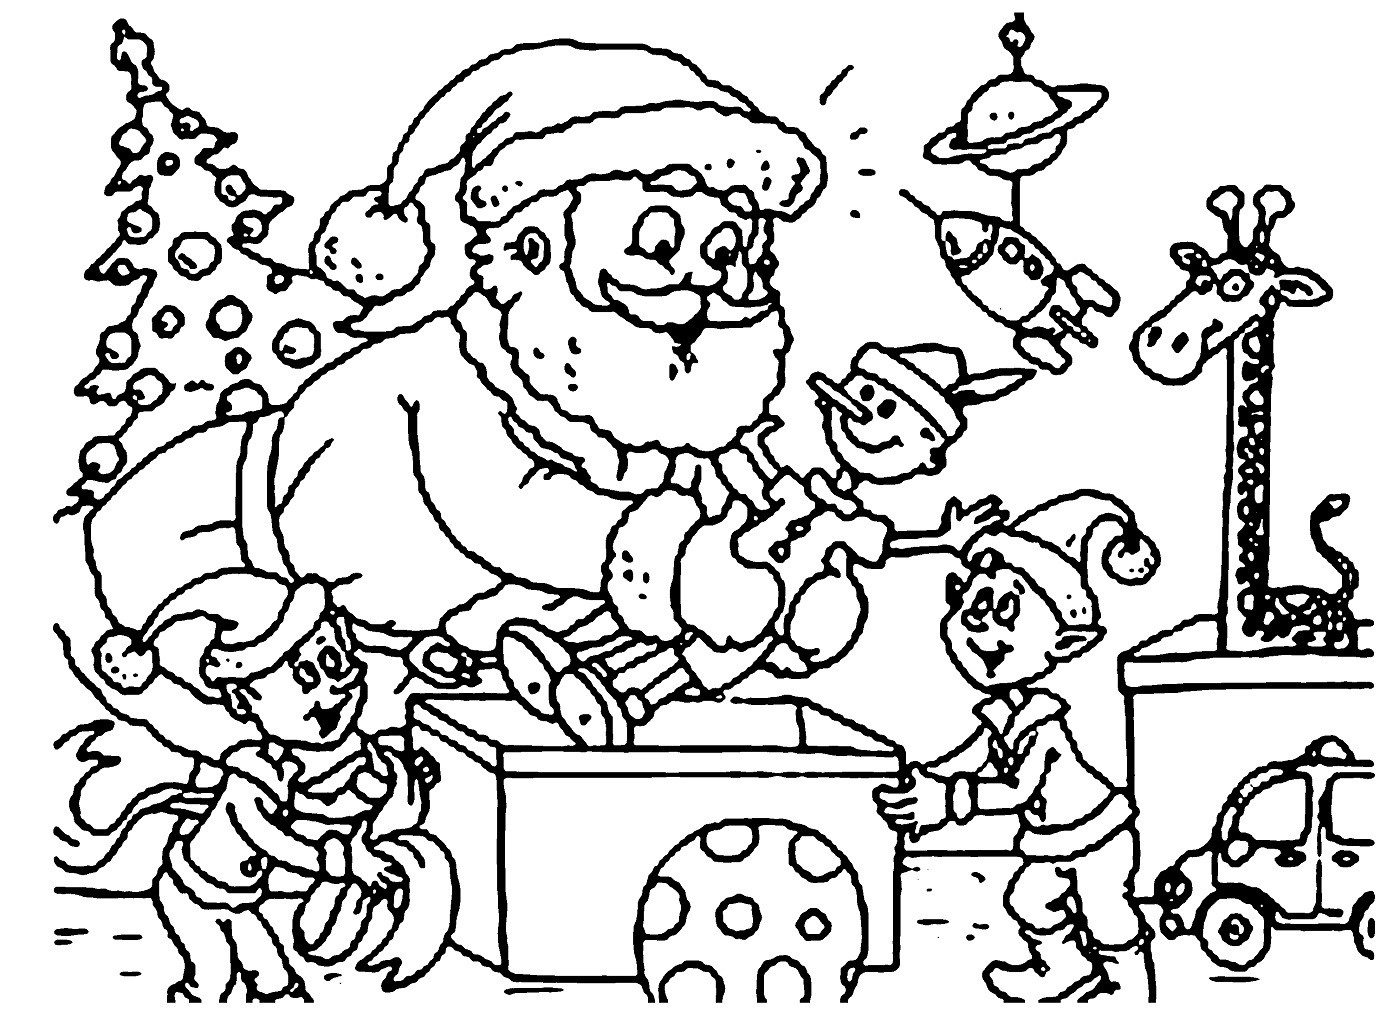 Santa Claus Coloring Pages To Print With Bag Of Toys Bright Clause Picture